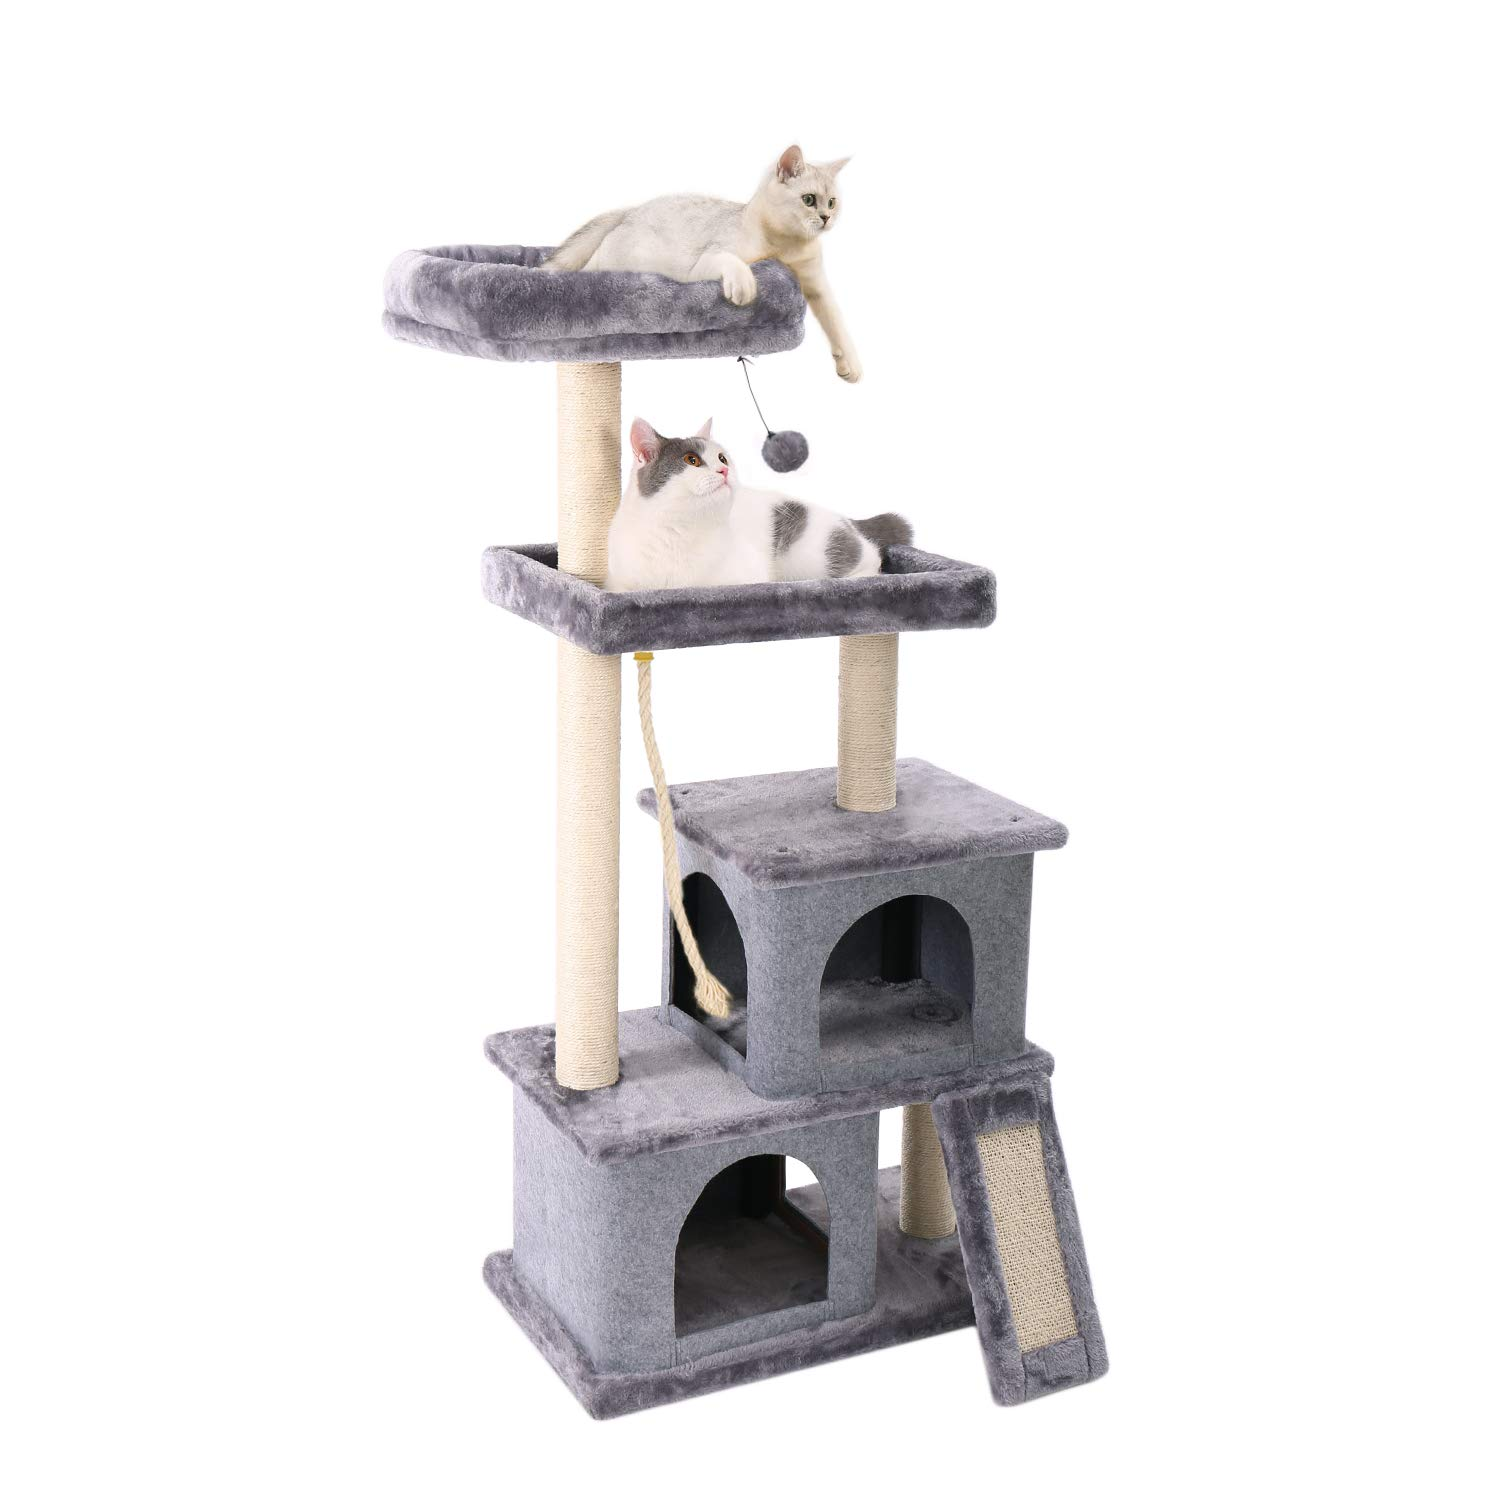 PAWZ Road Cat Tree Multilevel and Luxury Cat Towers 50 Inches with 2 Condos, Spacious Perches, Scratching Post, Dangling Balls and Ramp by PAWZ Road